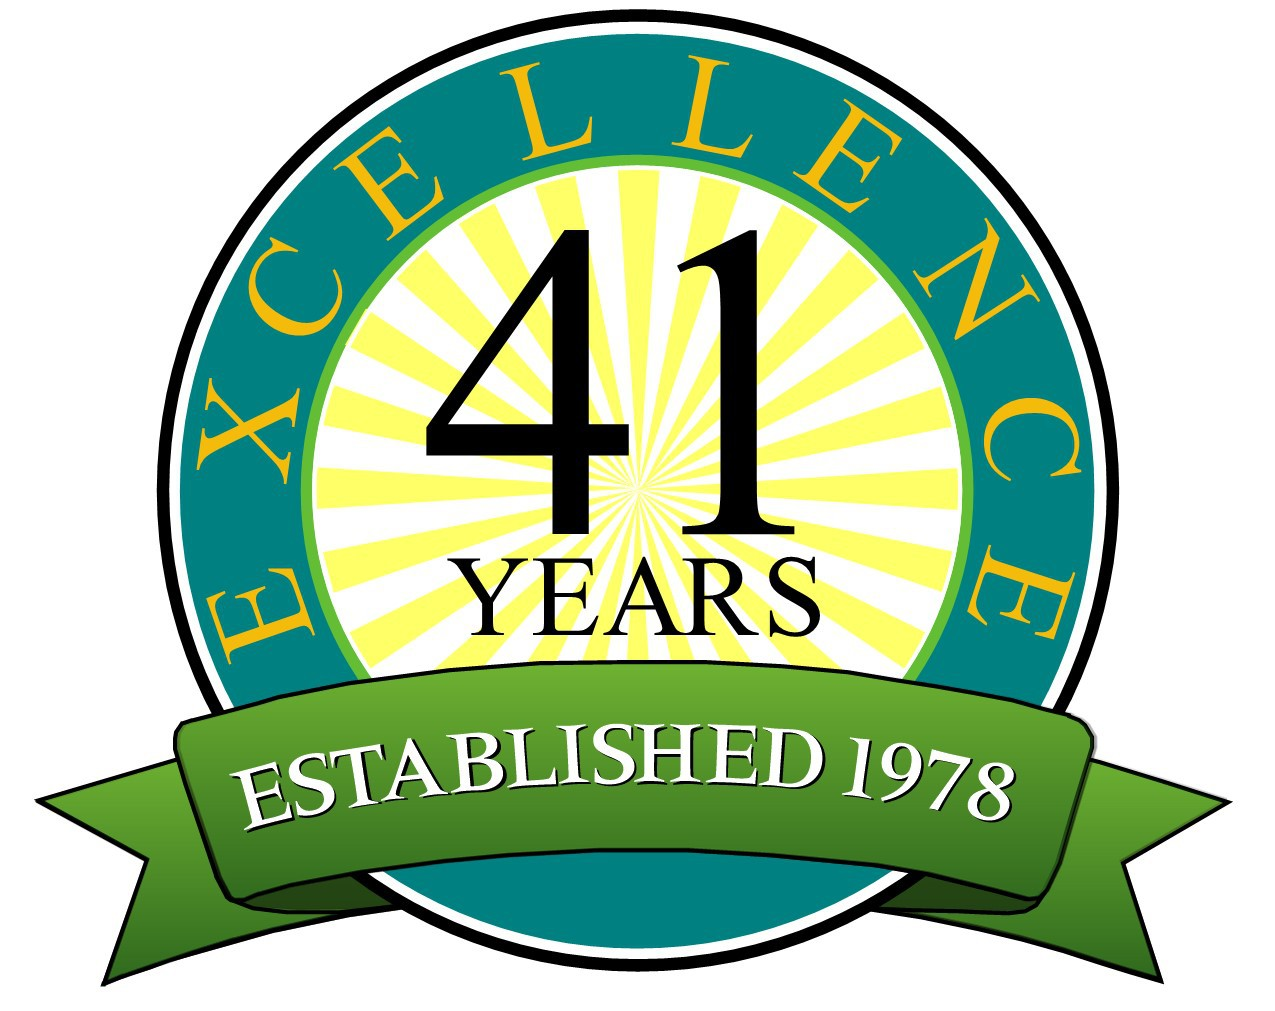 Celebrating 41 Years of Excellence